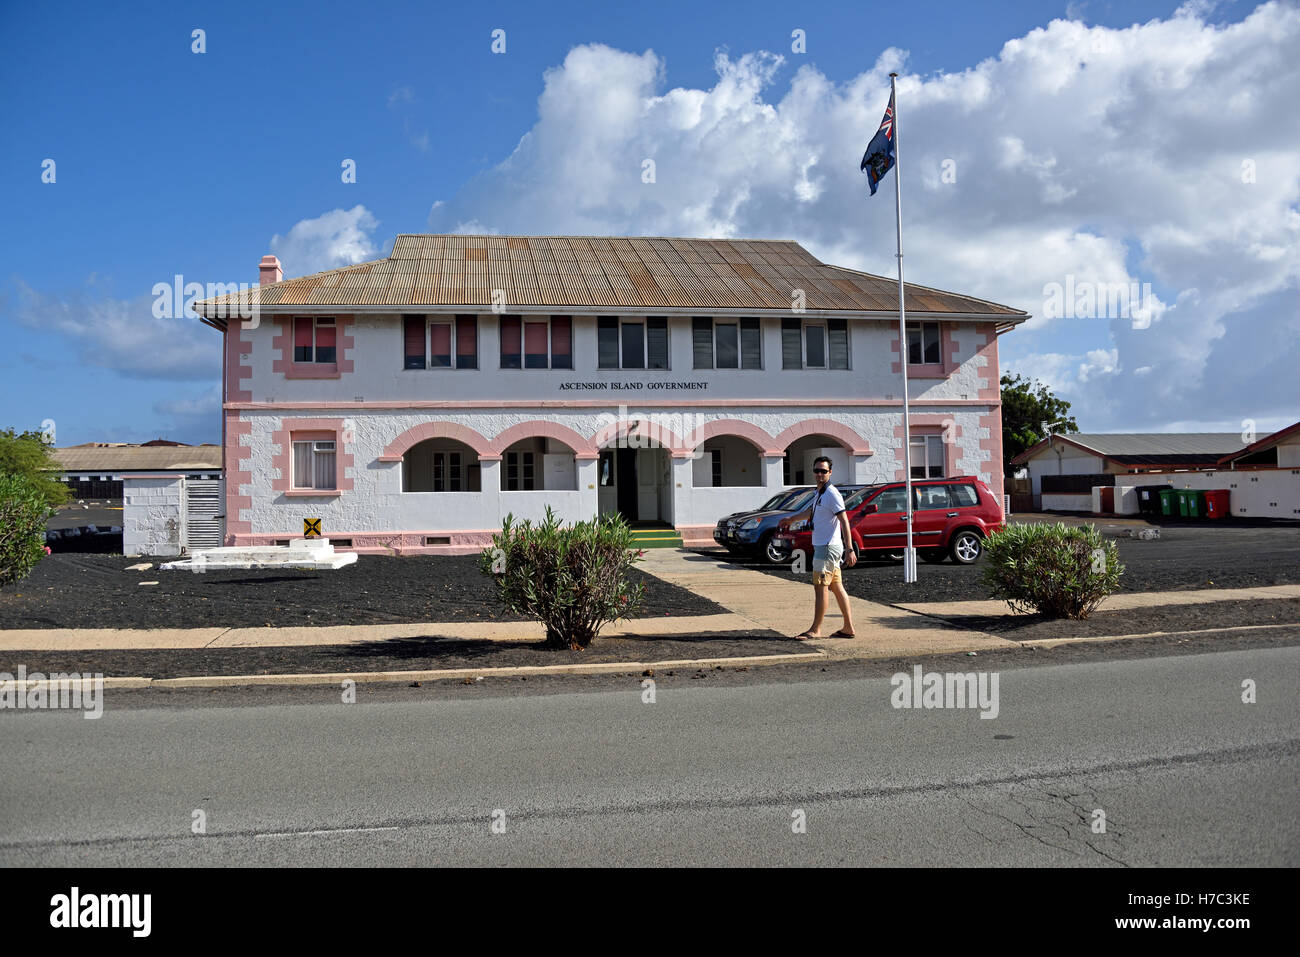 Ascension Island Government building in Georgetown - Stock Image